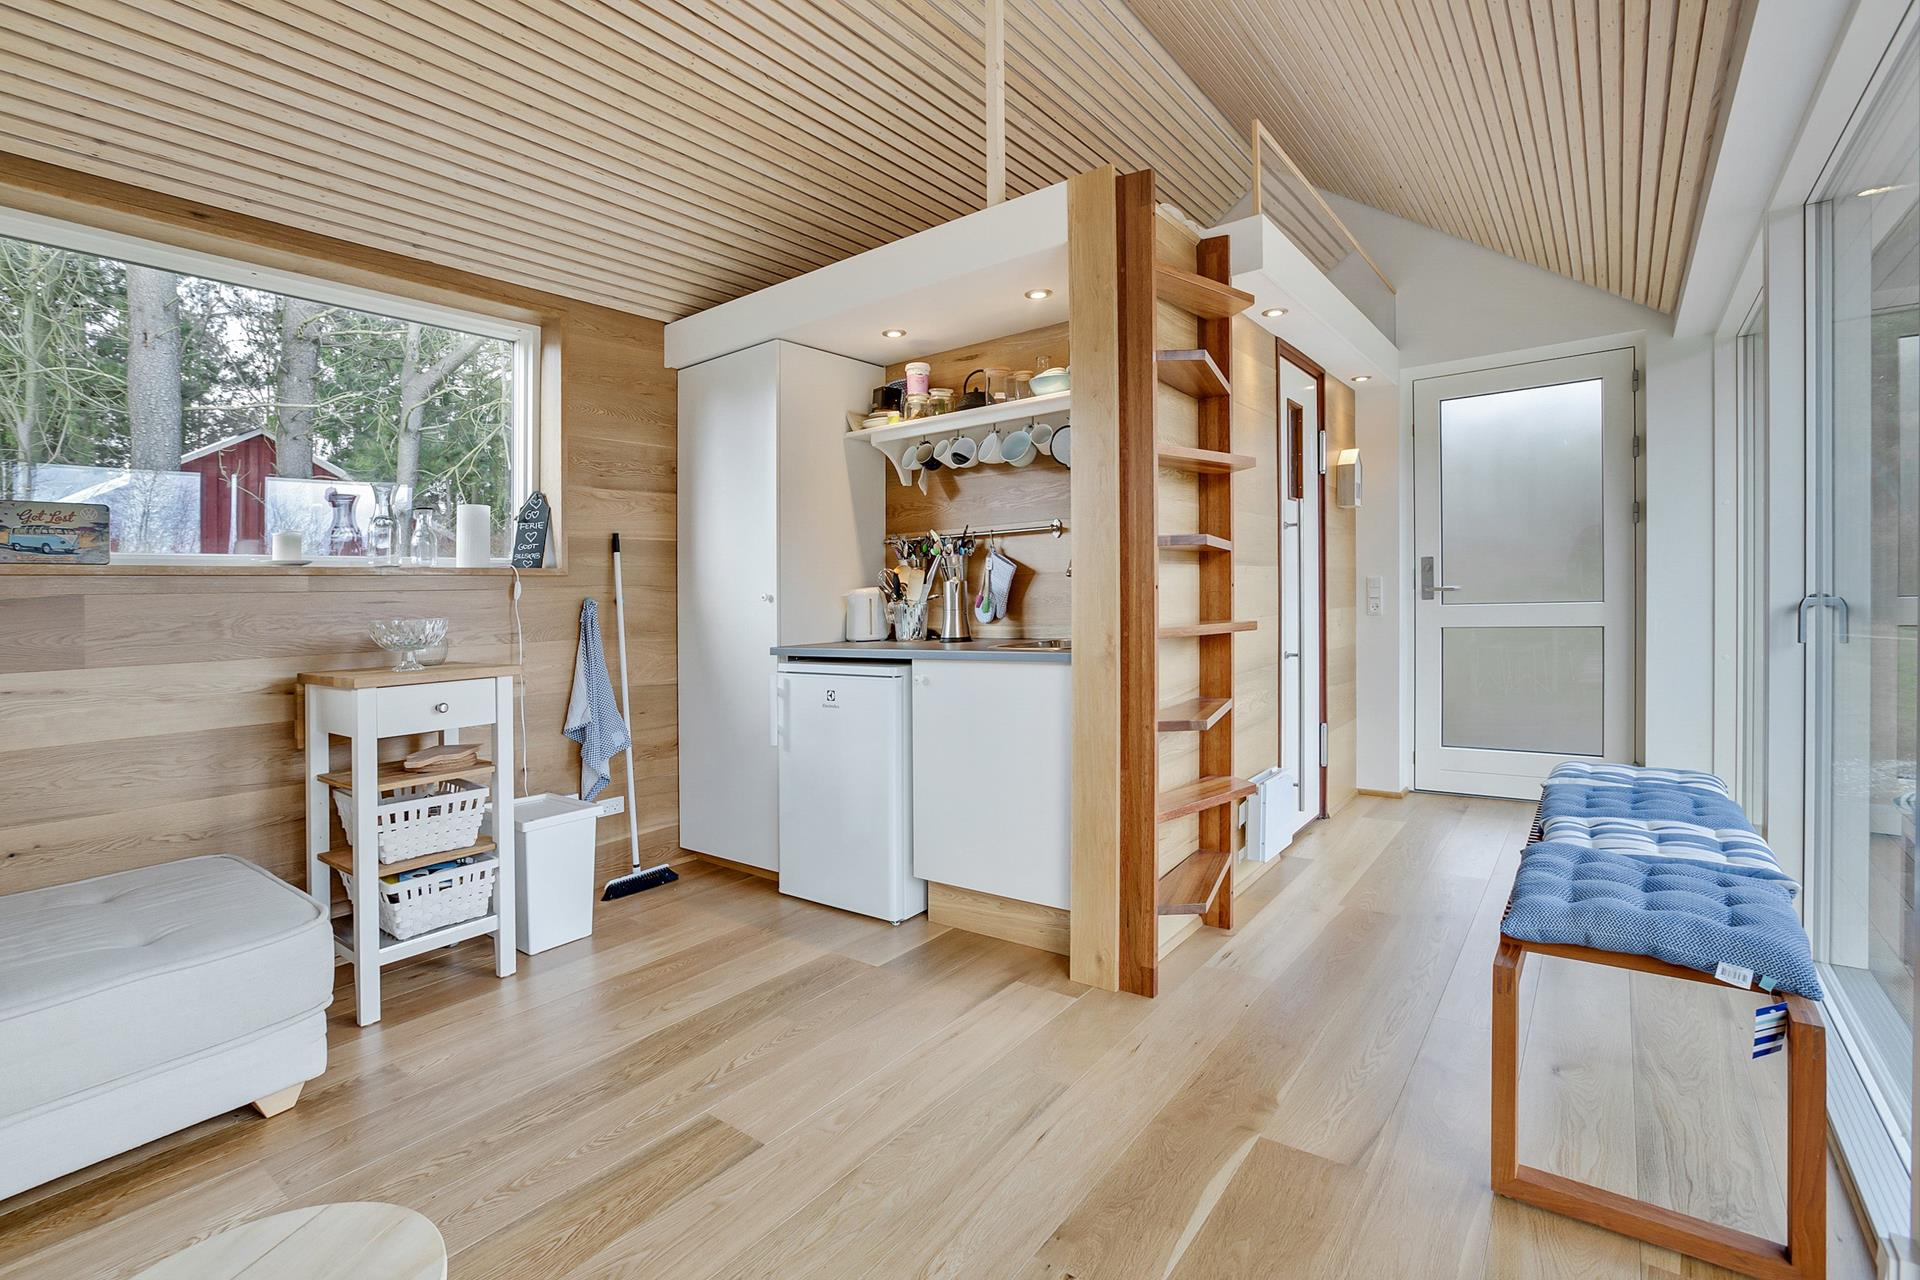 This Scandinavian Modern Tiny House In Denmark Has A 258 Sq Ft Studio Floor Plan With